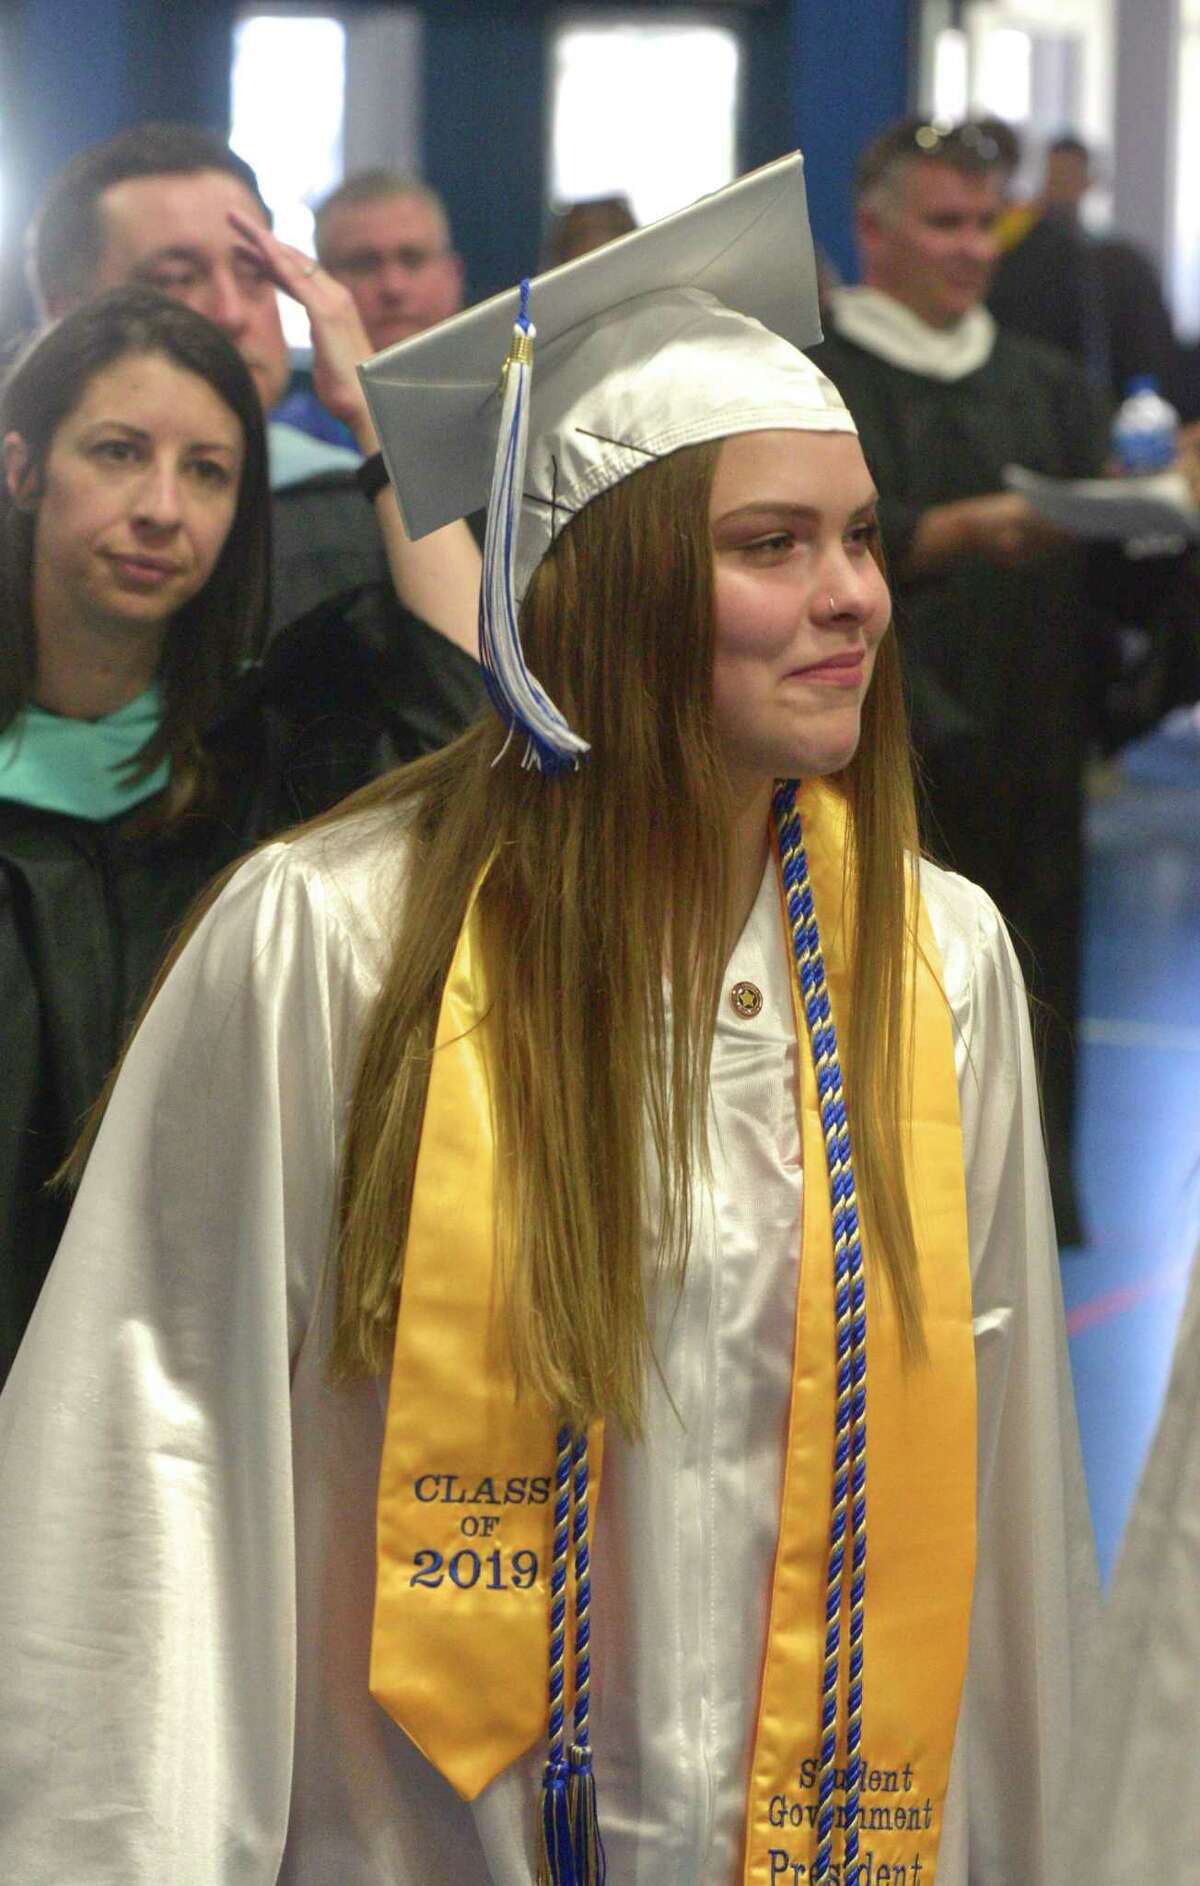 2019 Commencement Exercises of Newtown High School. June 11, 2019, at the O'Neill Center of Western Connecticut State University, Danbury, Conn.